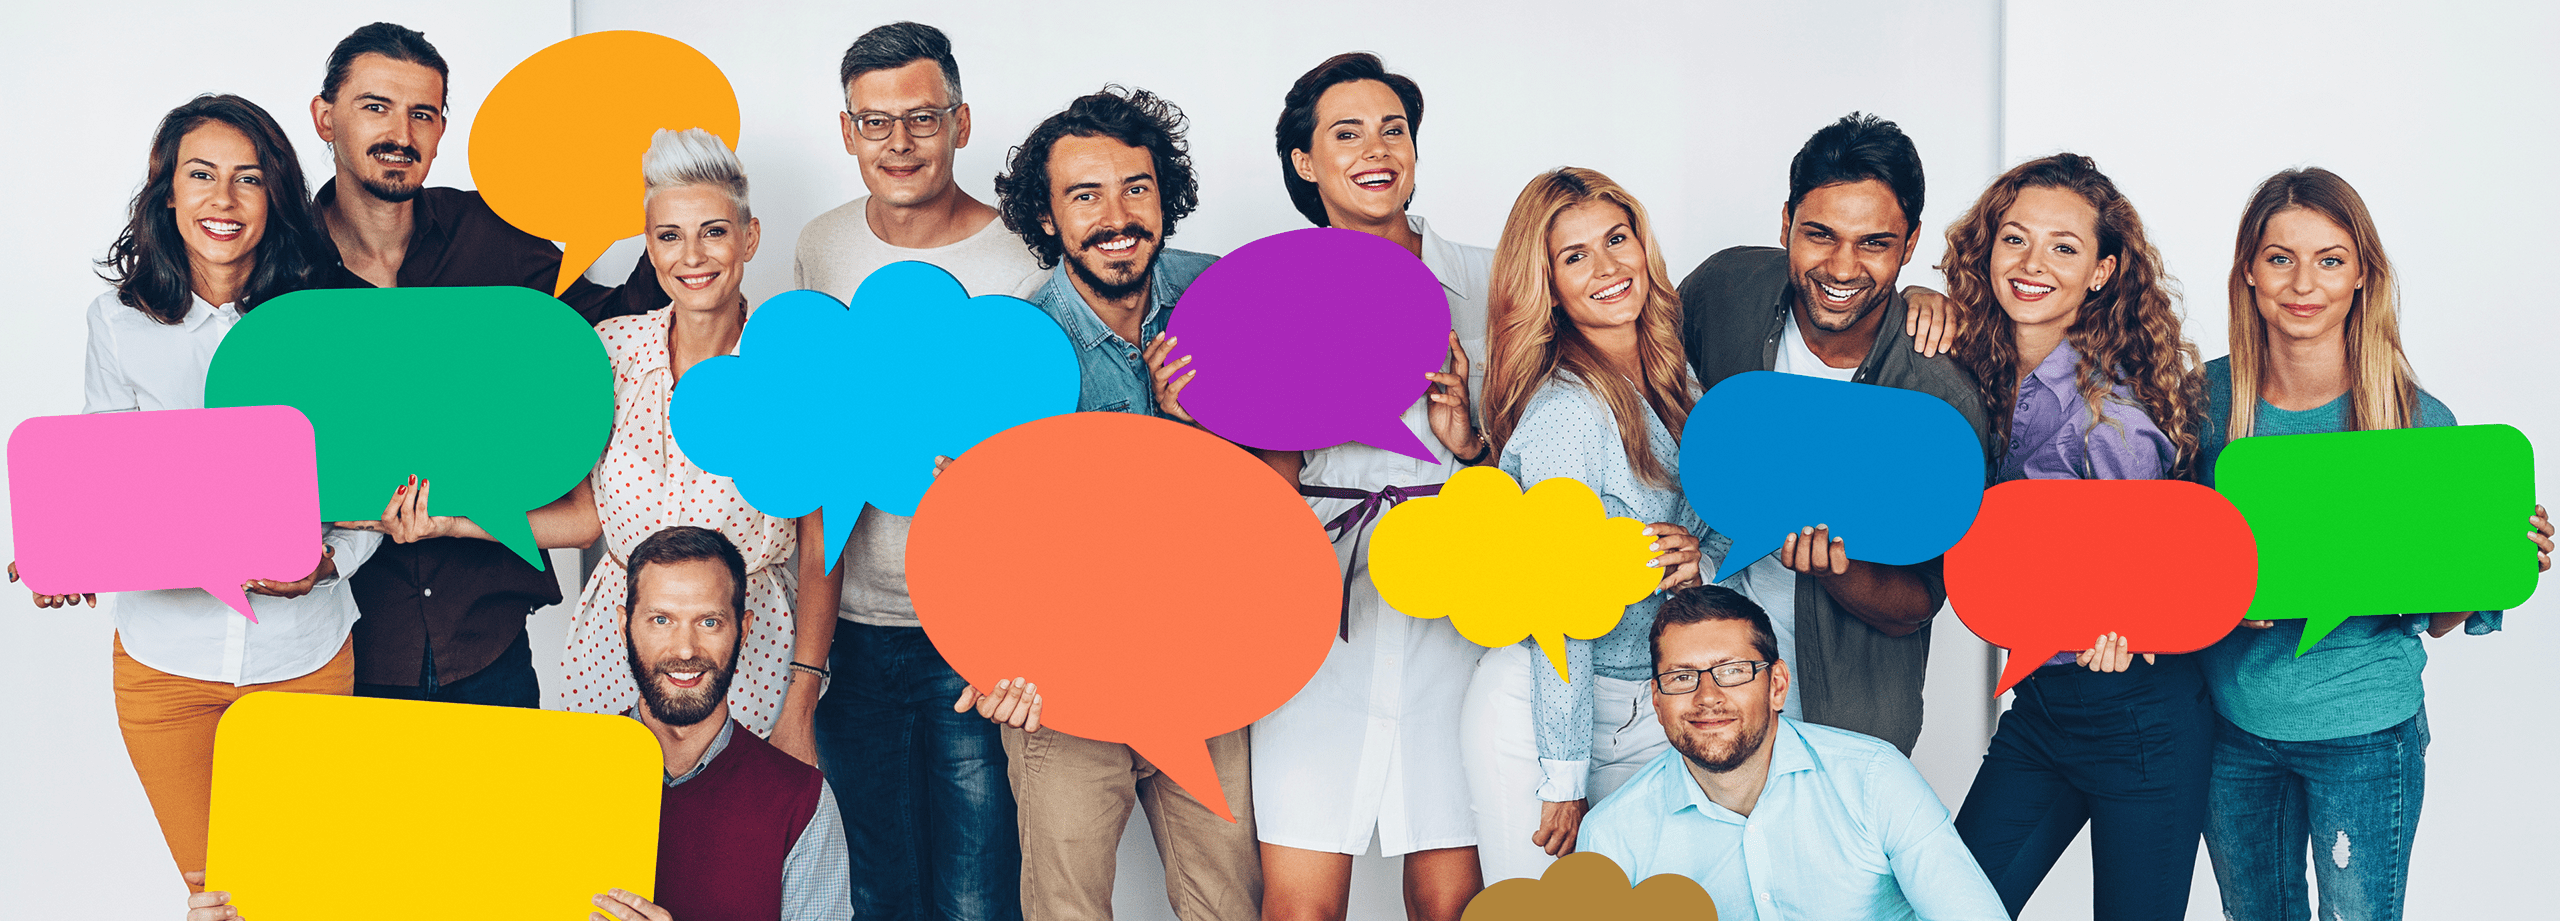 Photo of a group of adults holding speech bubbles to indicate